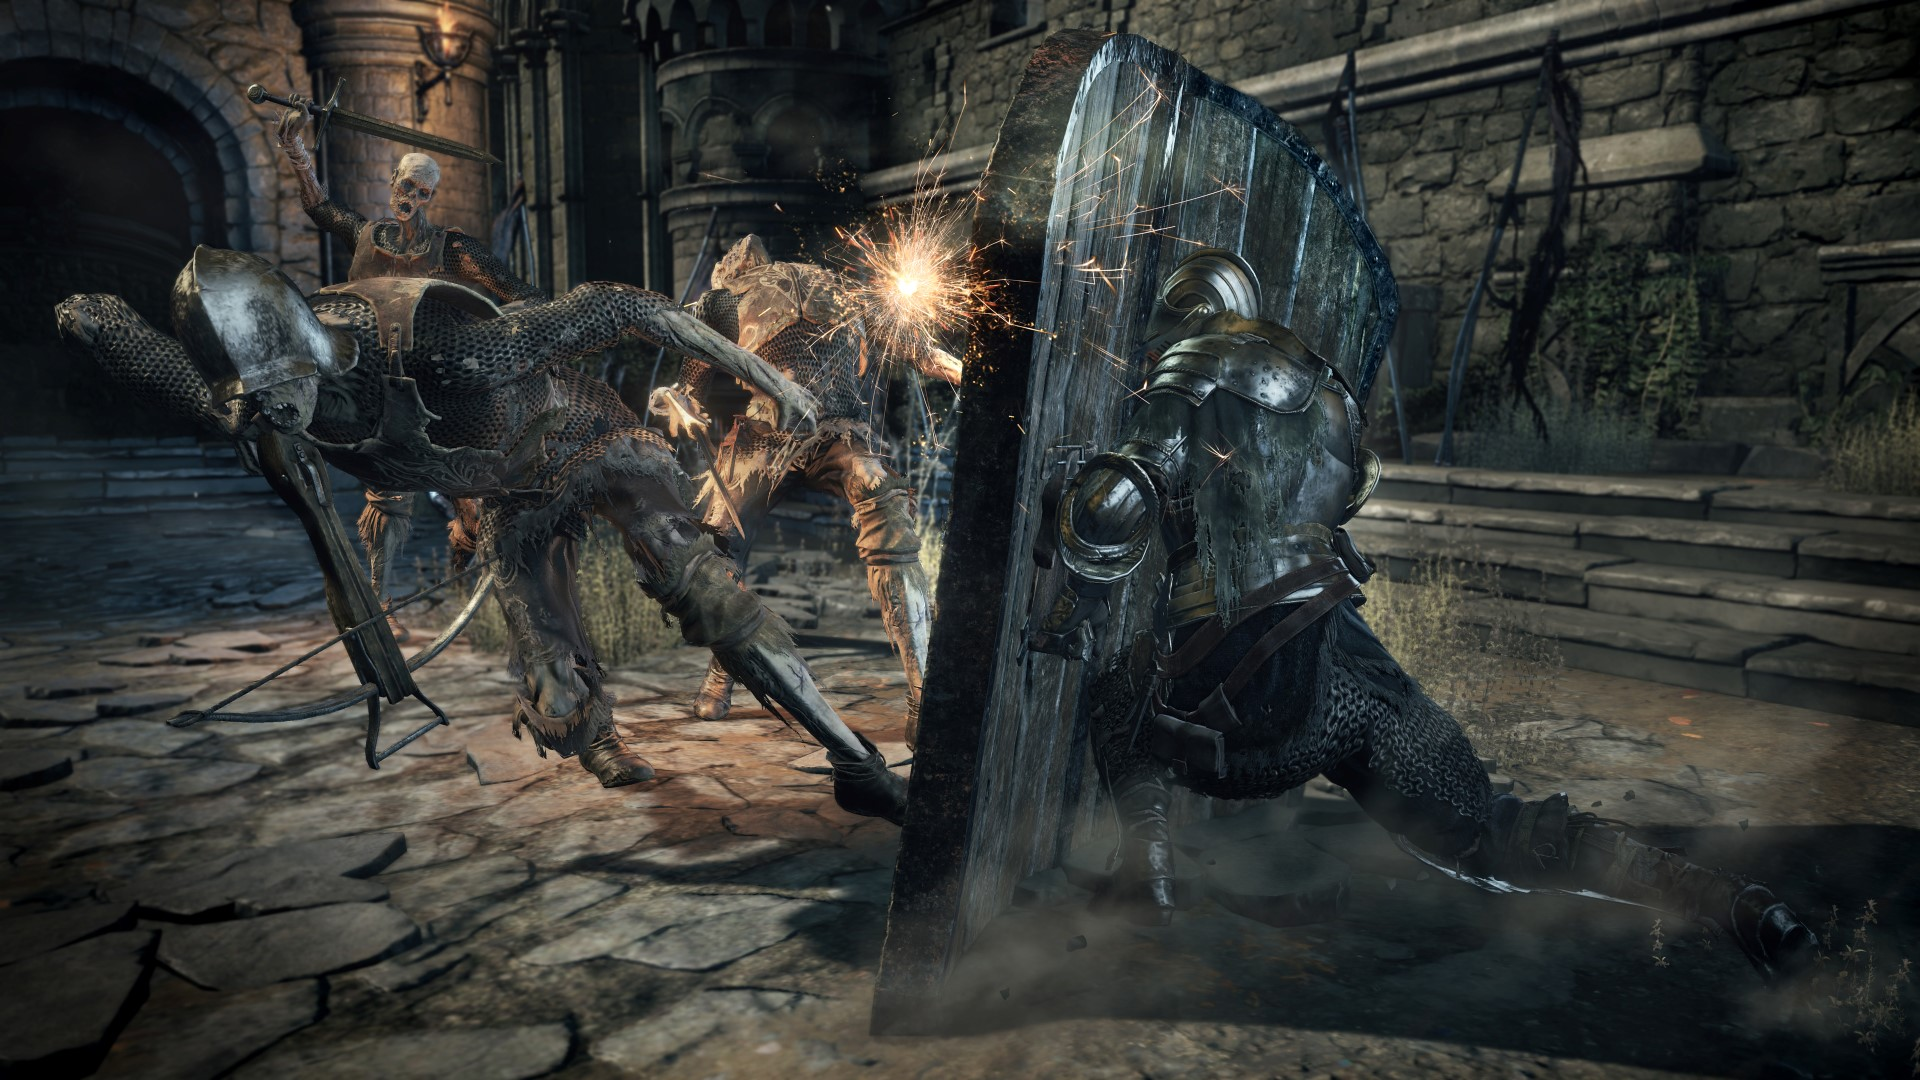 dark souls 3 the ringed city all weapons locations guide